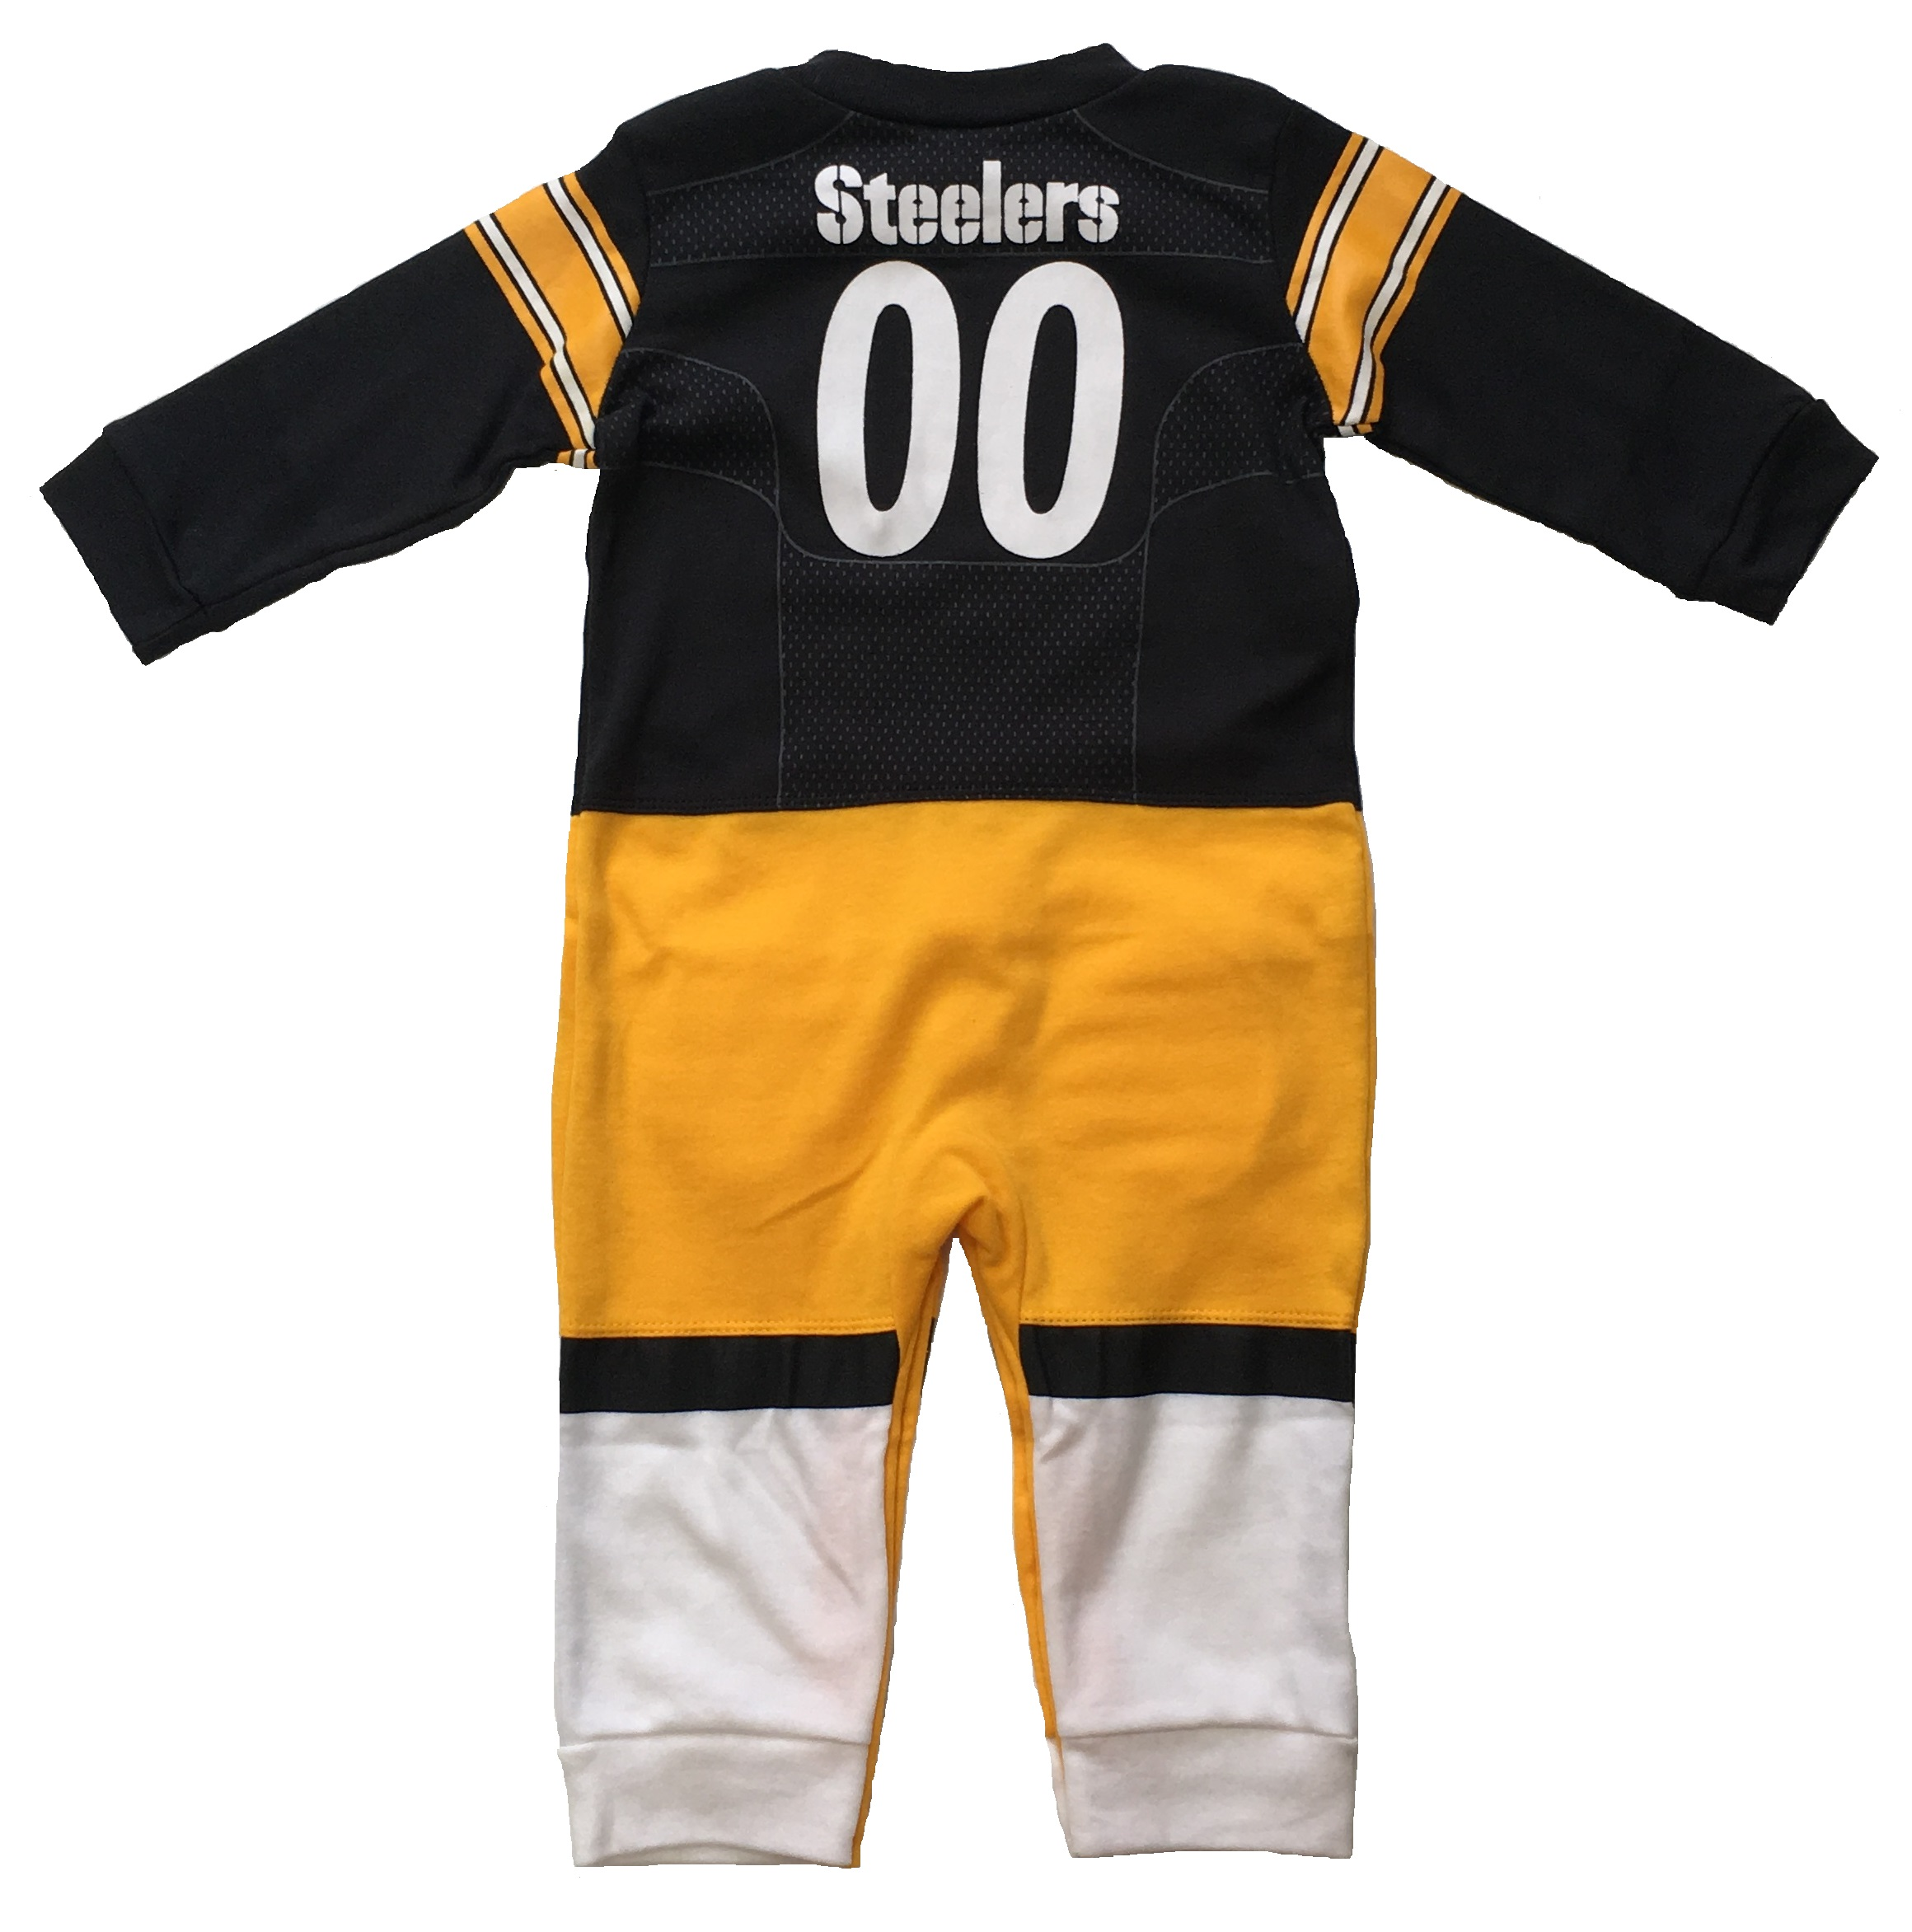 nfl-steelers-player-playersuit-12-back